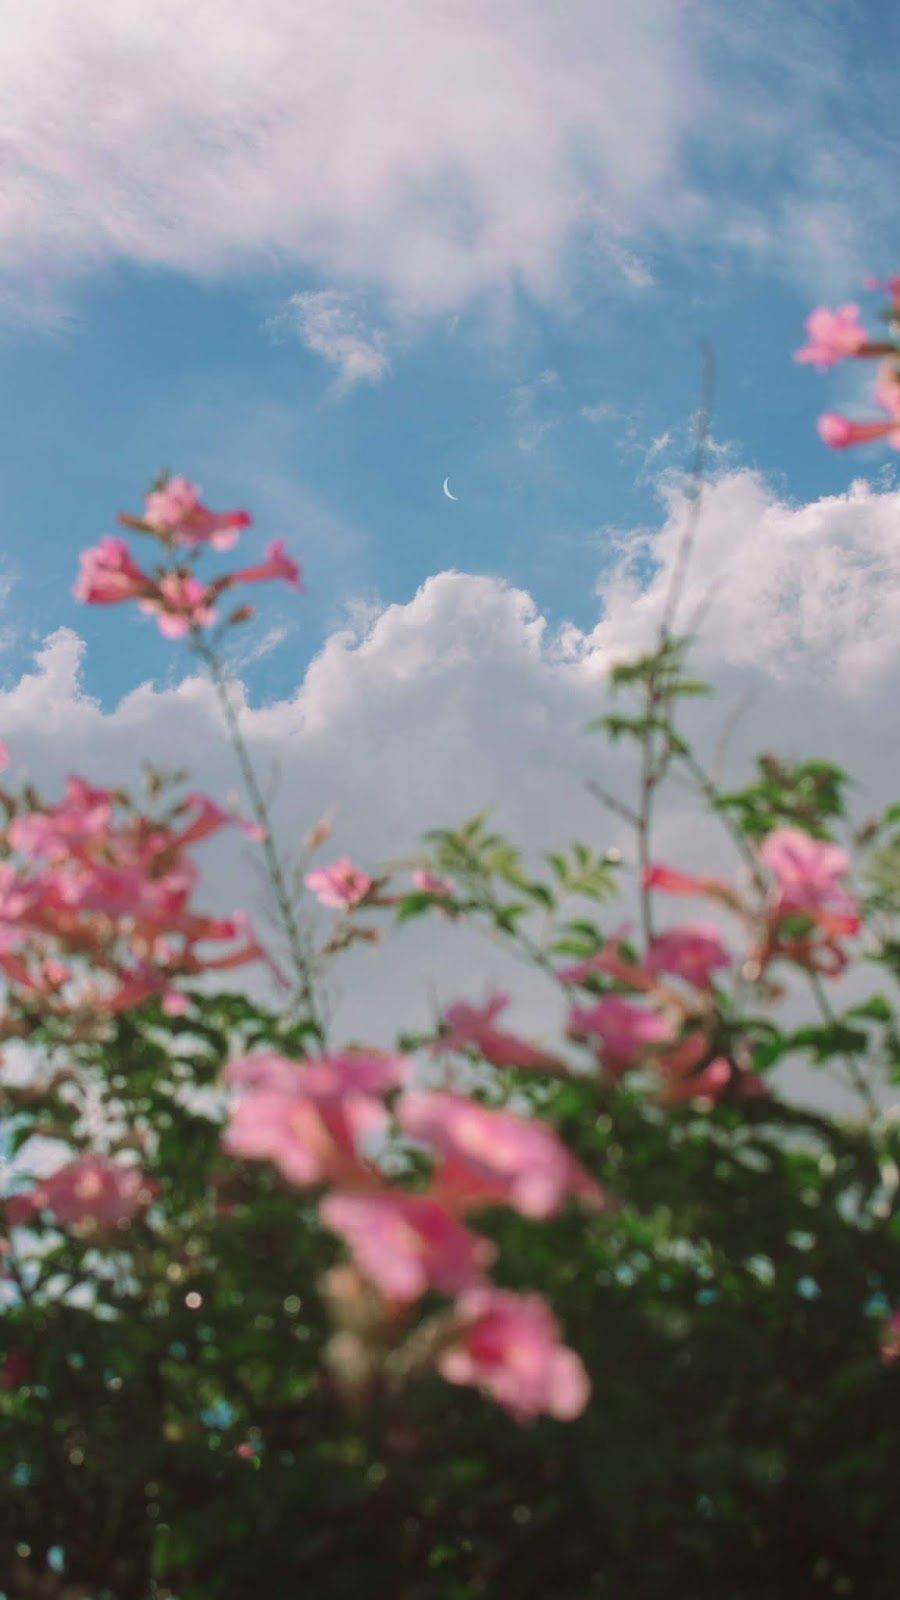 Pink Flowers Under The Blue Sky Nature Photography Sky Aesthetic Scenery Wallpaper